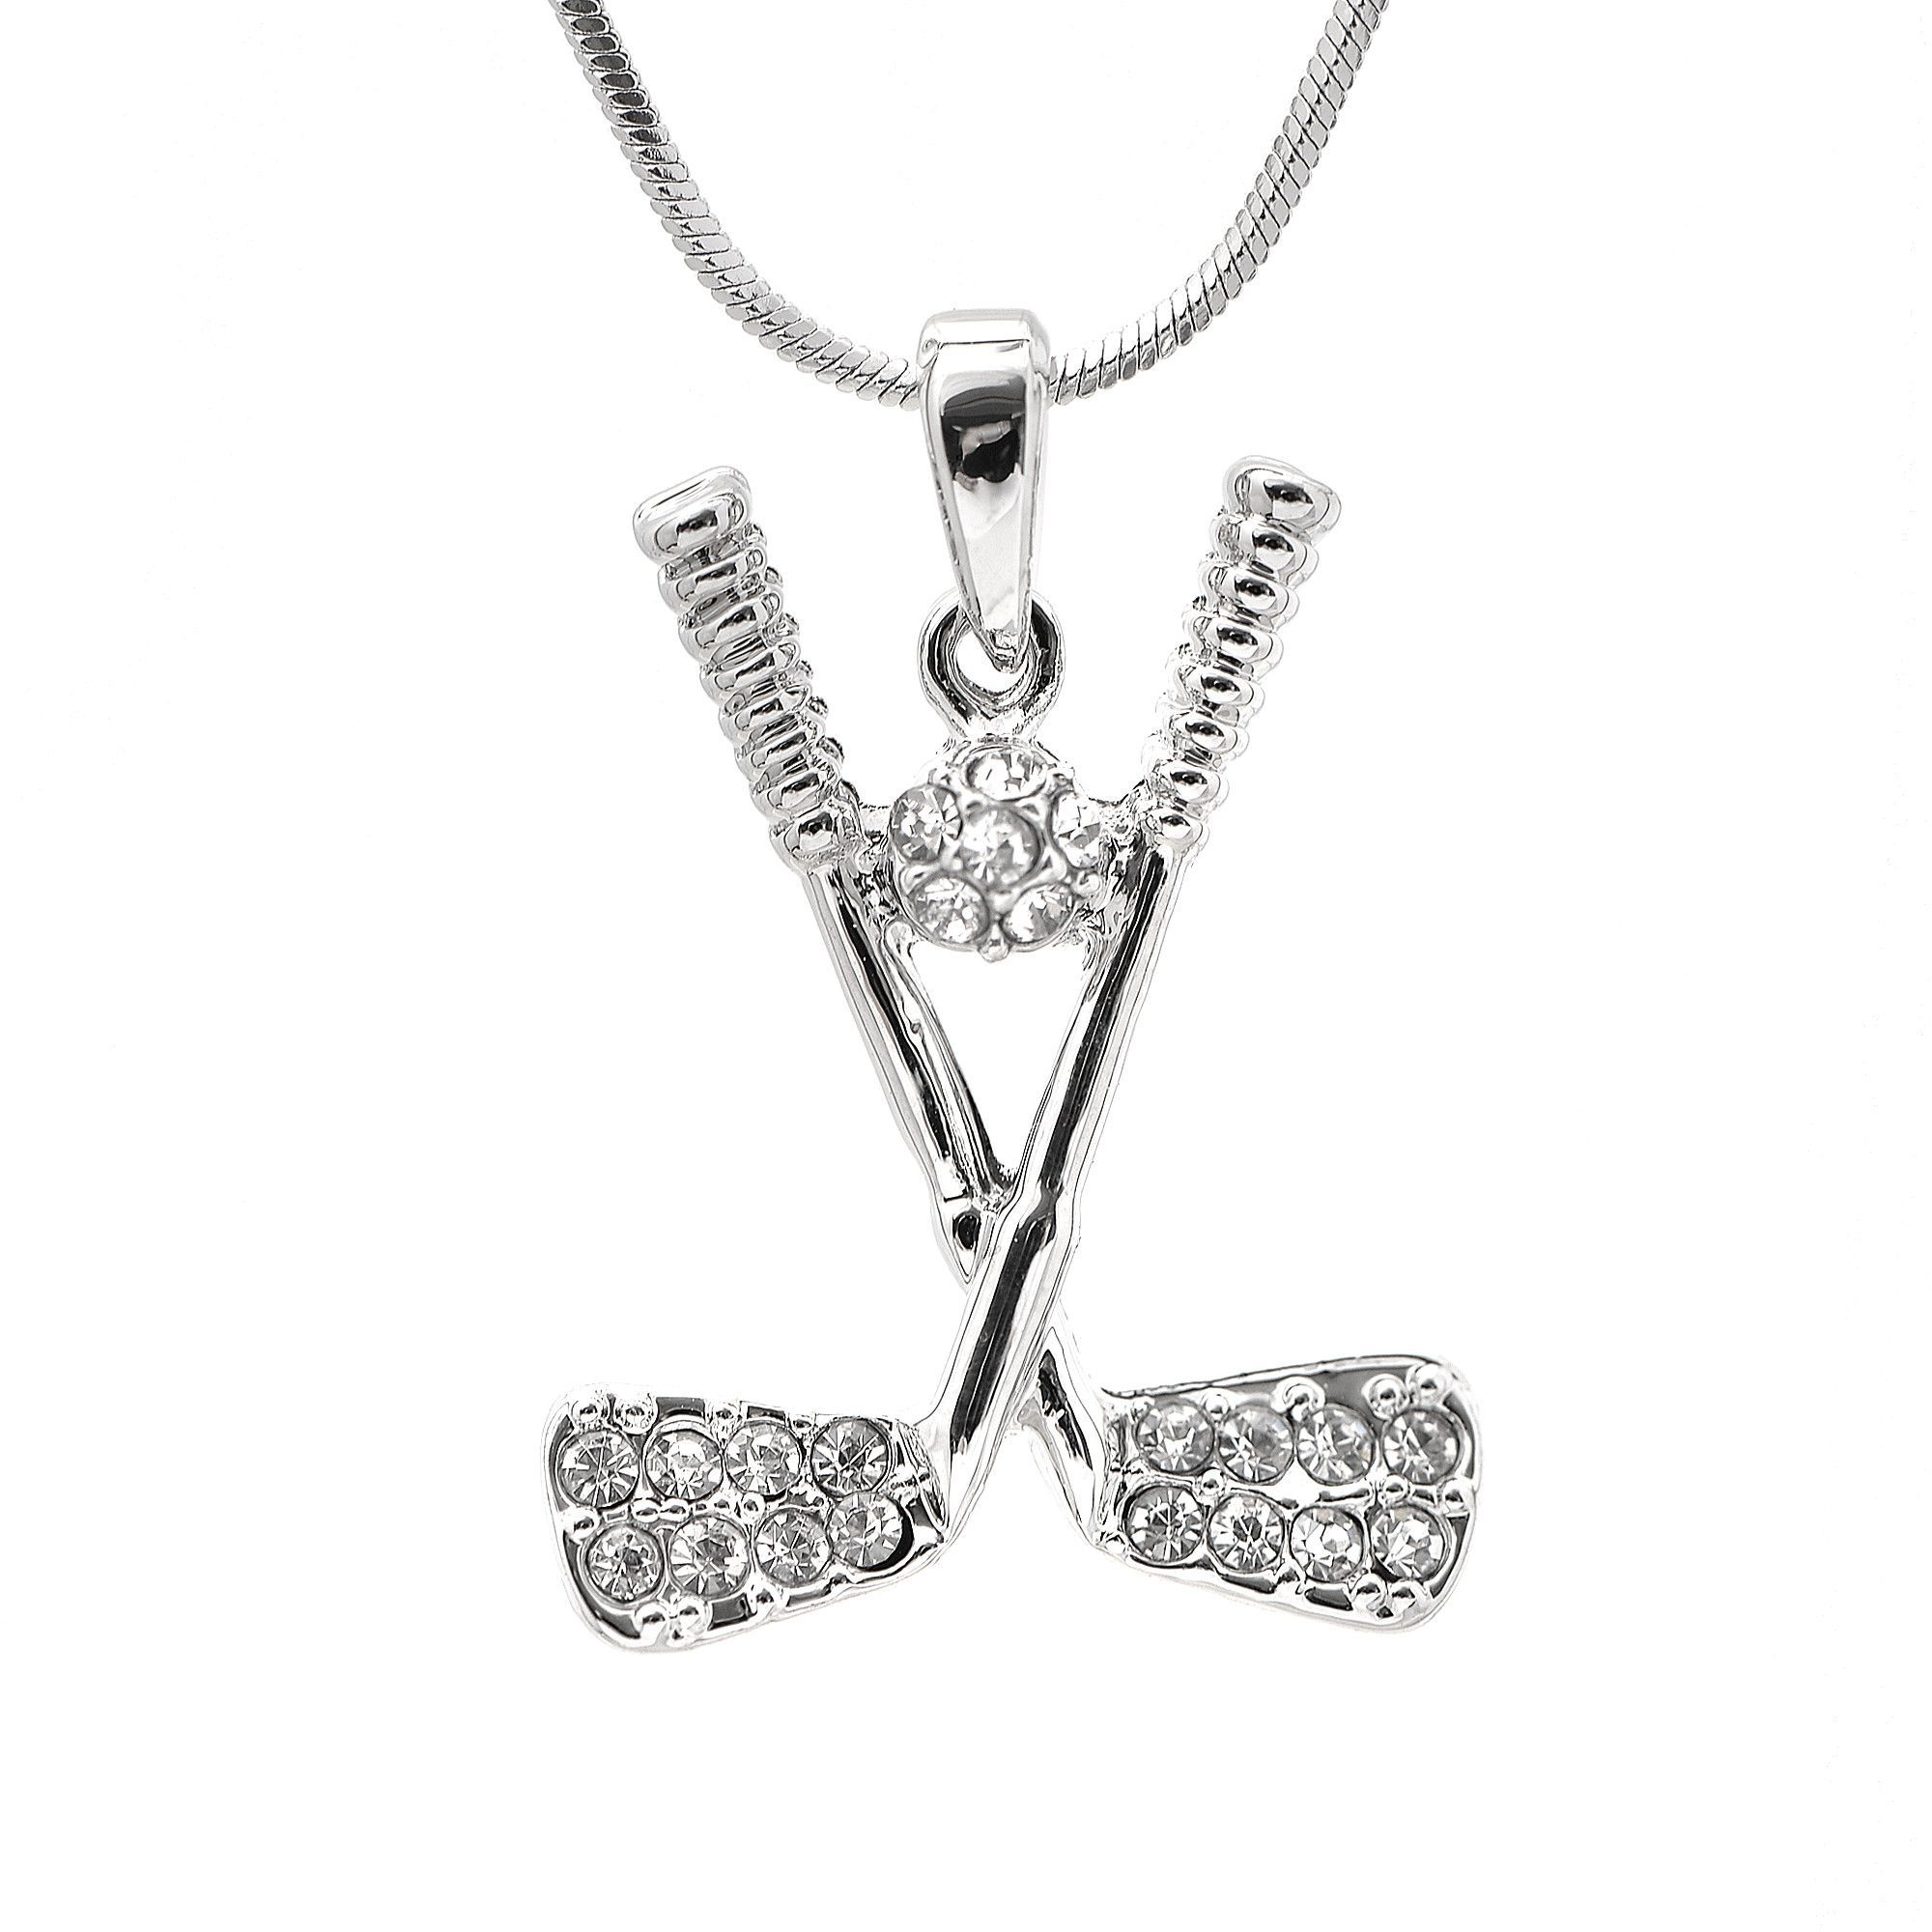 Crystal golf club with ball necklace golf swing tips pinterest crystal golf club with ball necklace aloadofball Choice Image